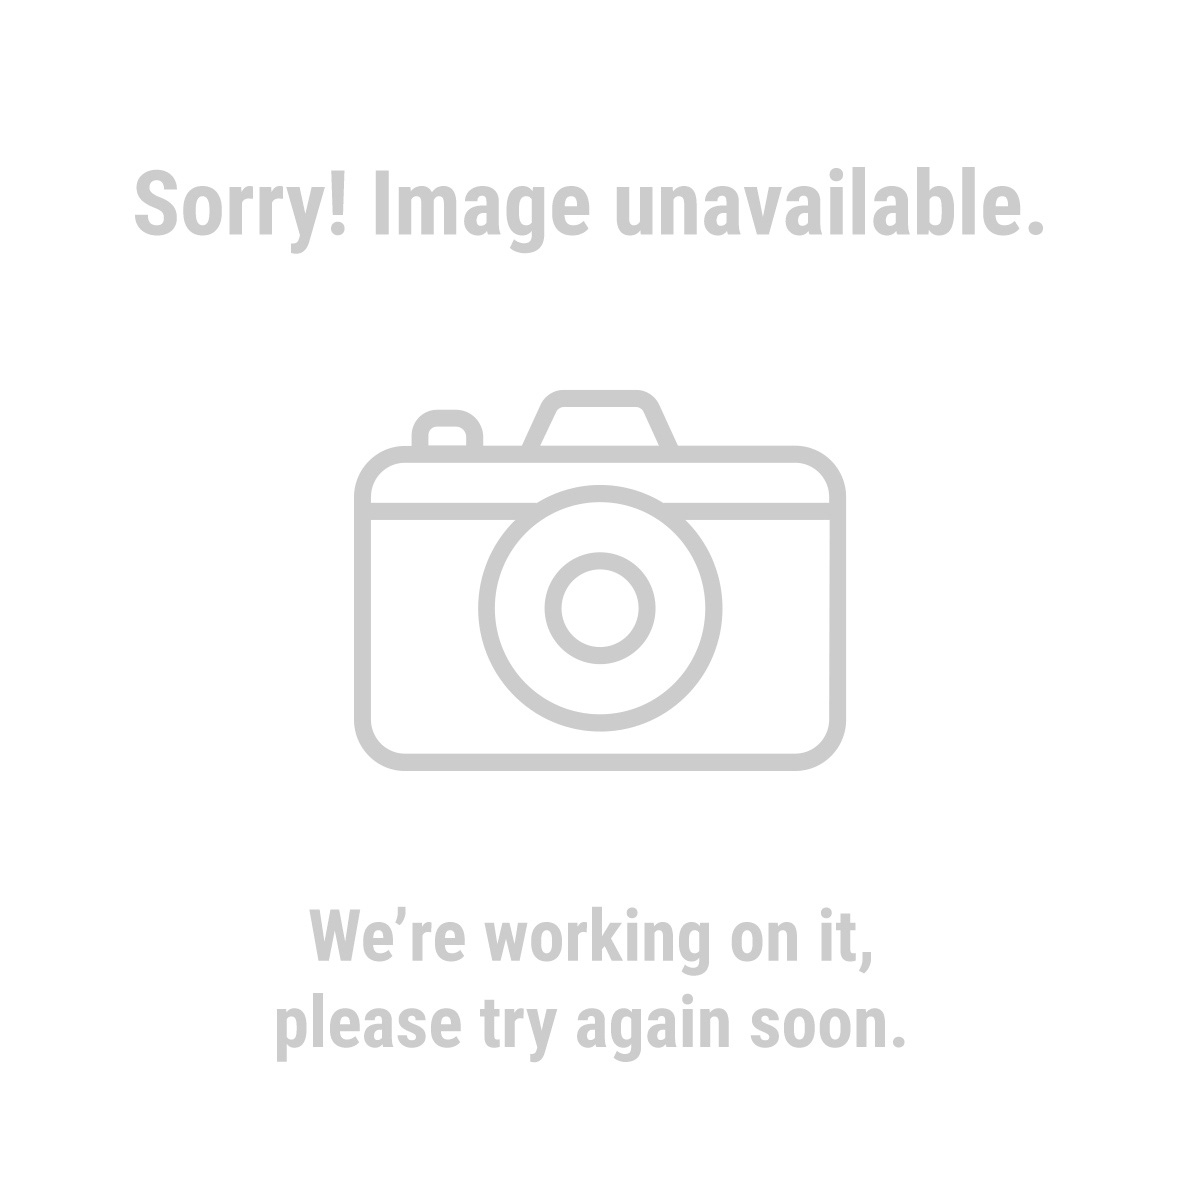 Haul-Master 97966 5 Piece Amber Teardrop Cab Light Kit